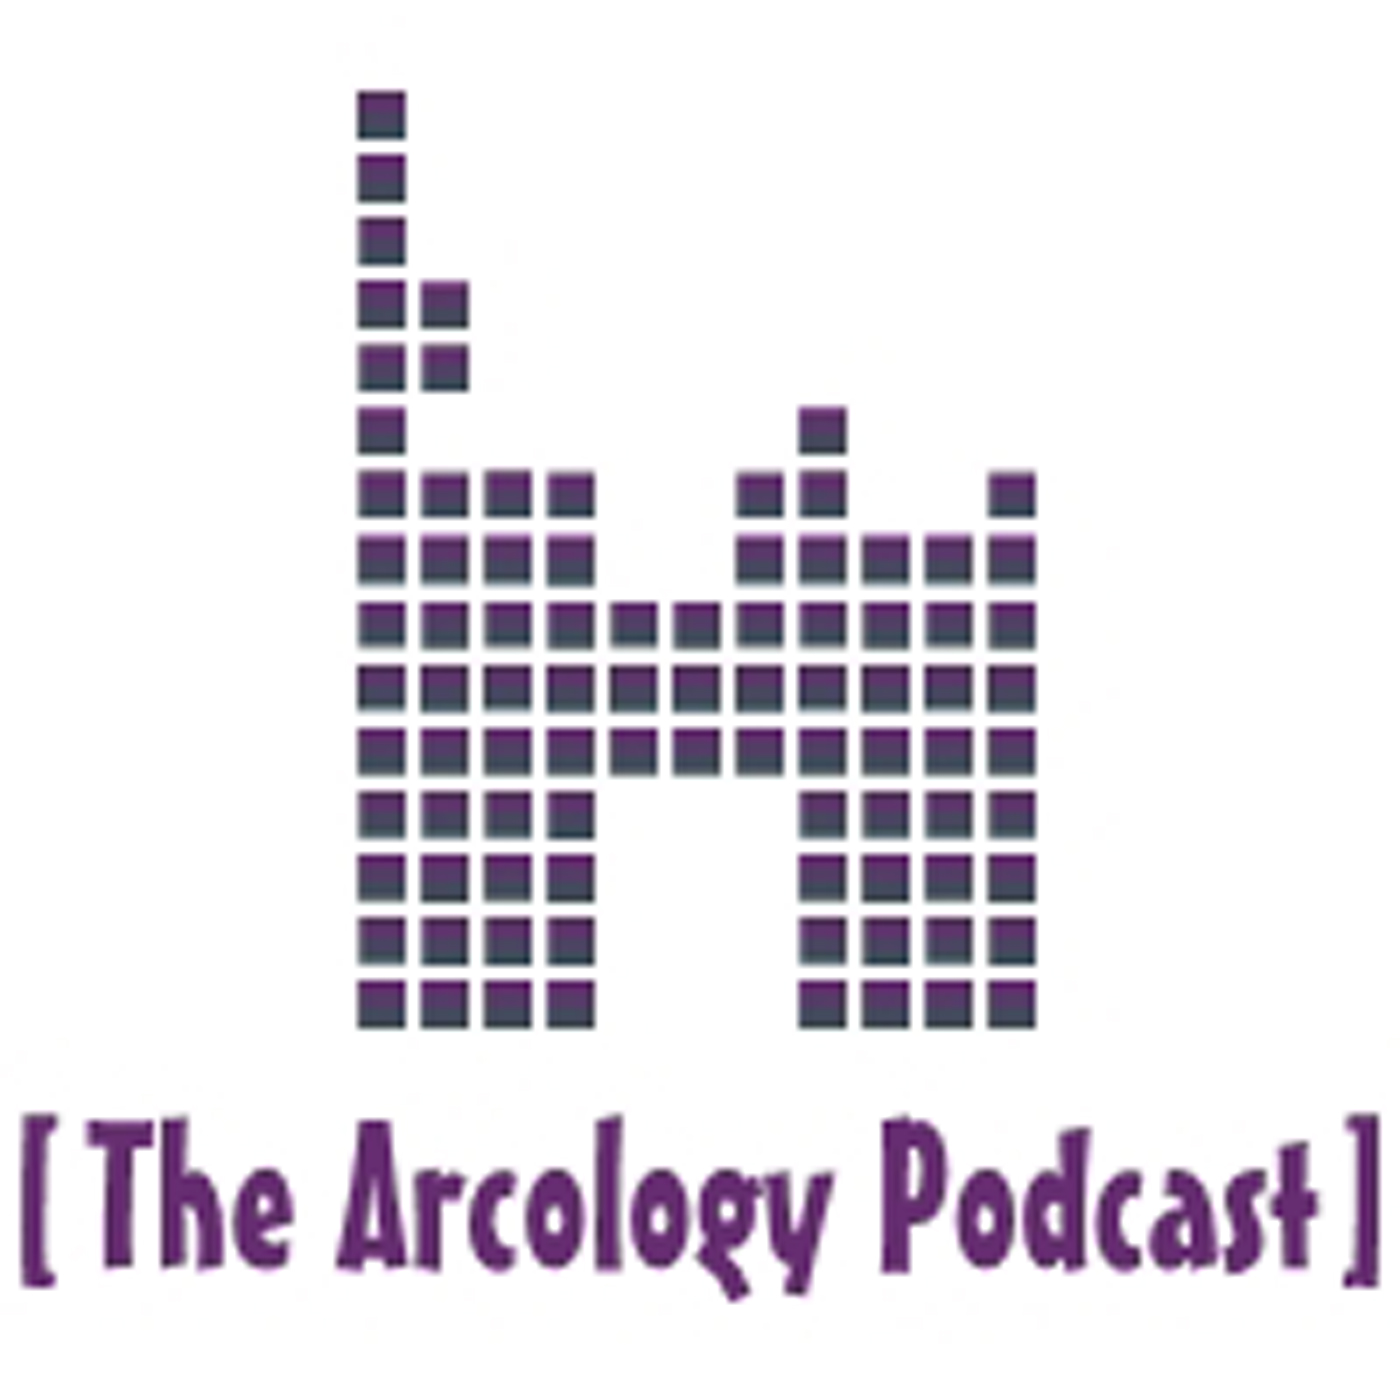 Podcasts – The Arcology Podcast